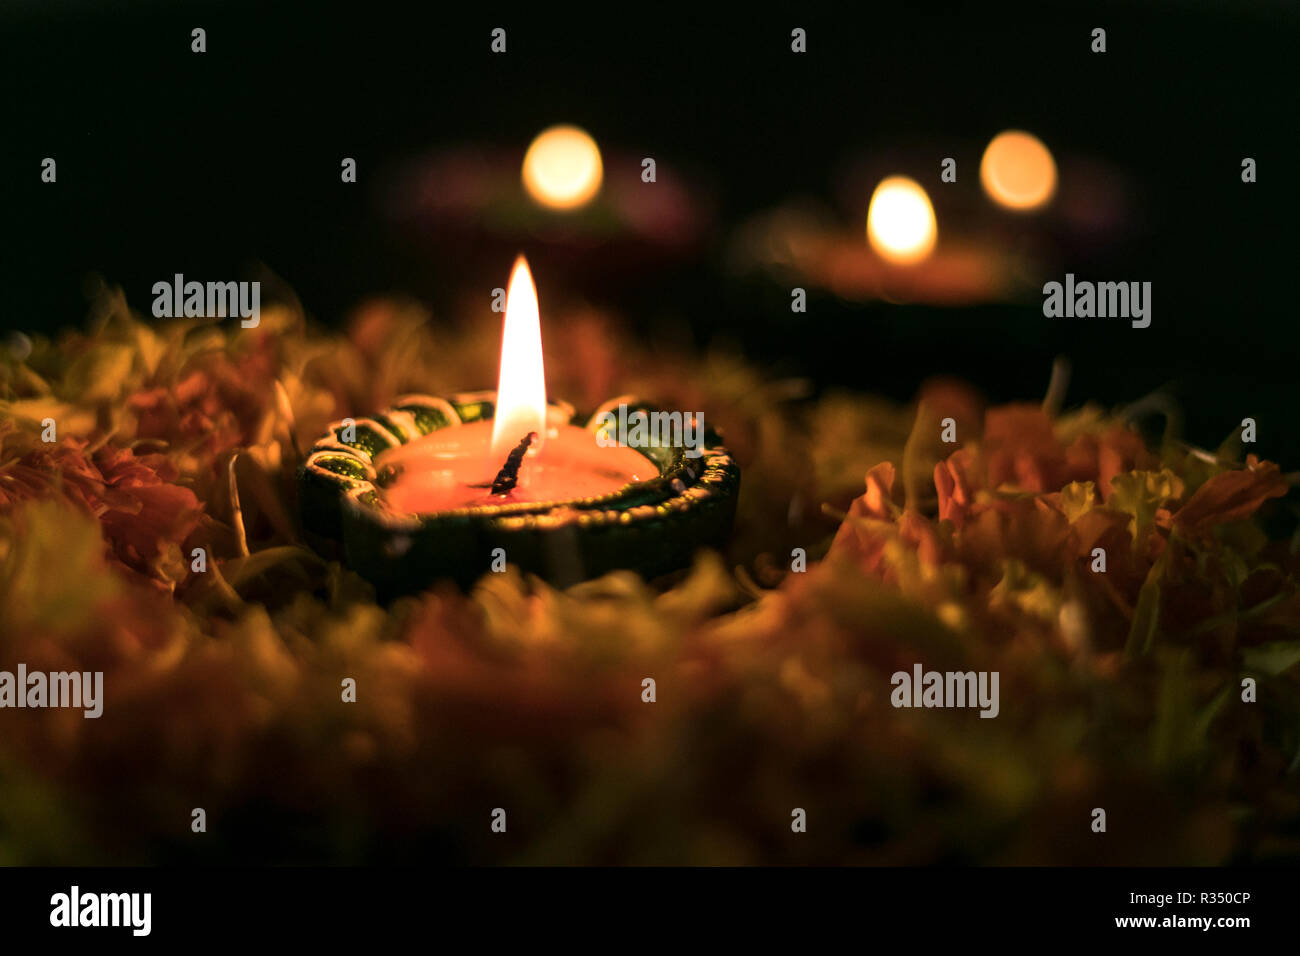 Lit Diyas arranged on a table to celebrate diwali and dhanteras in Asia Stock Photo